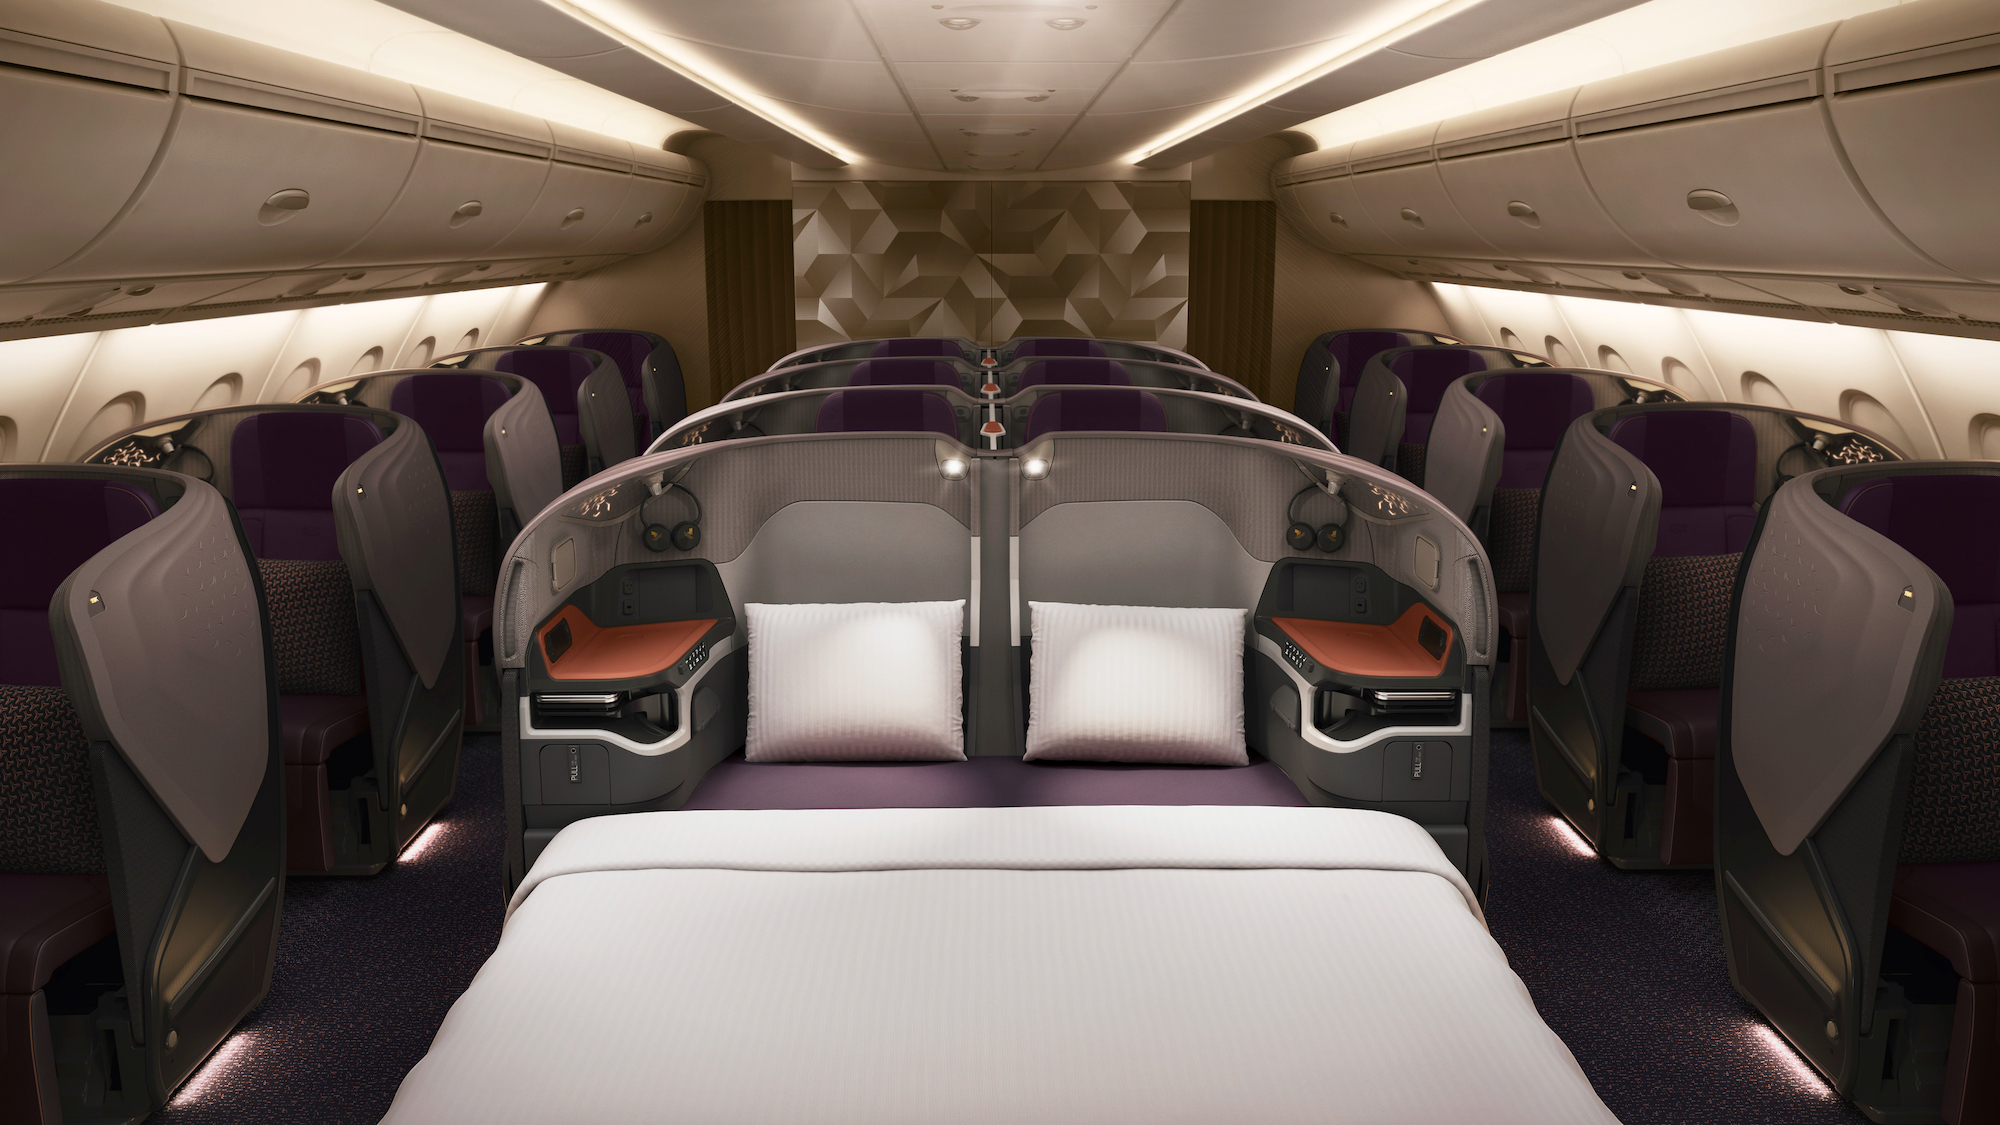 Shanghai and Zurich next to get the new Singapore Airlines ...